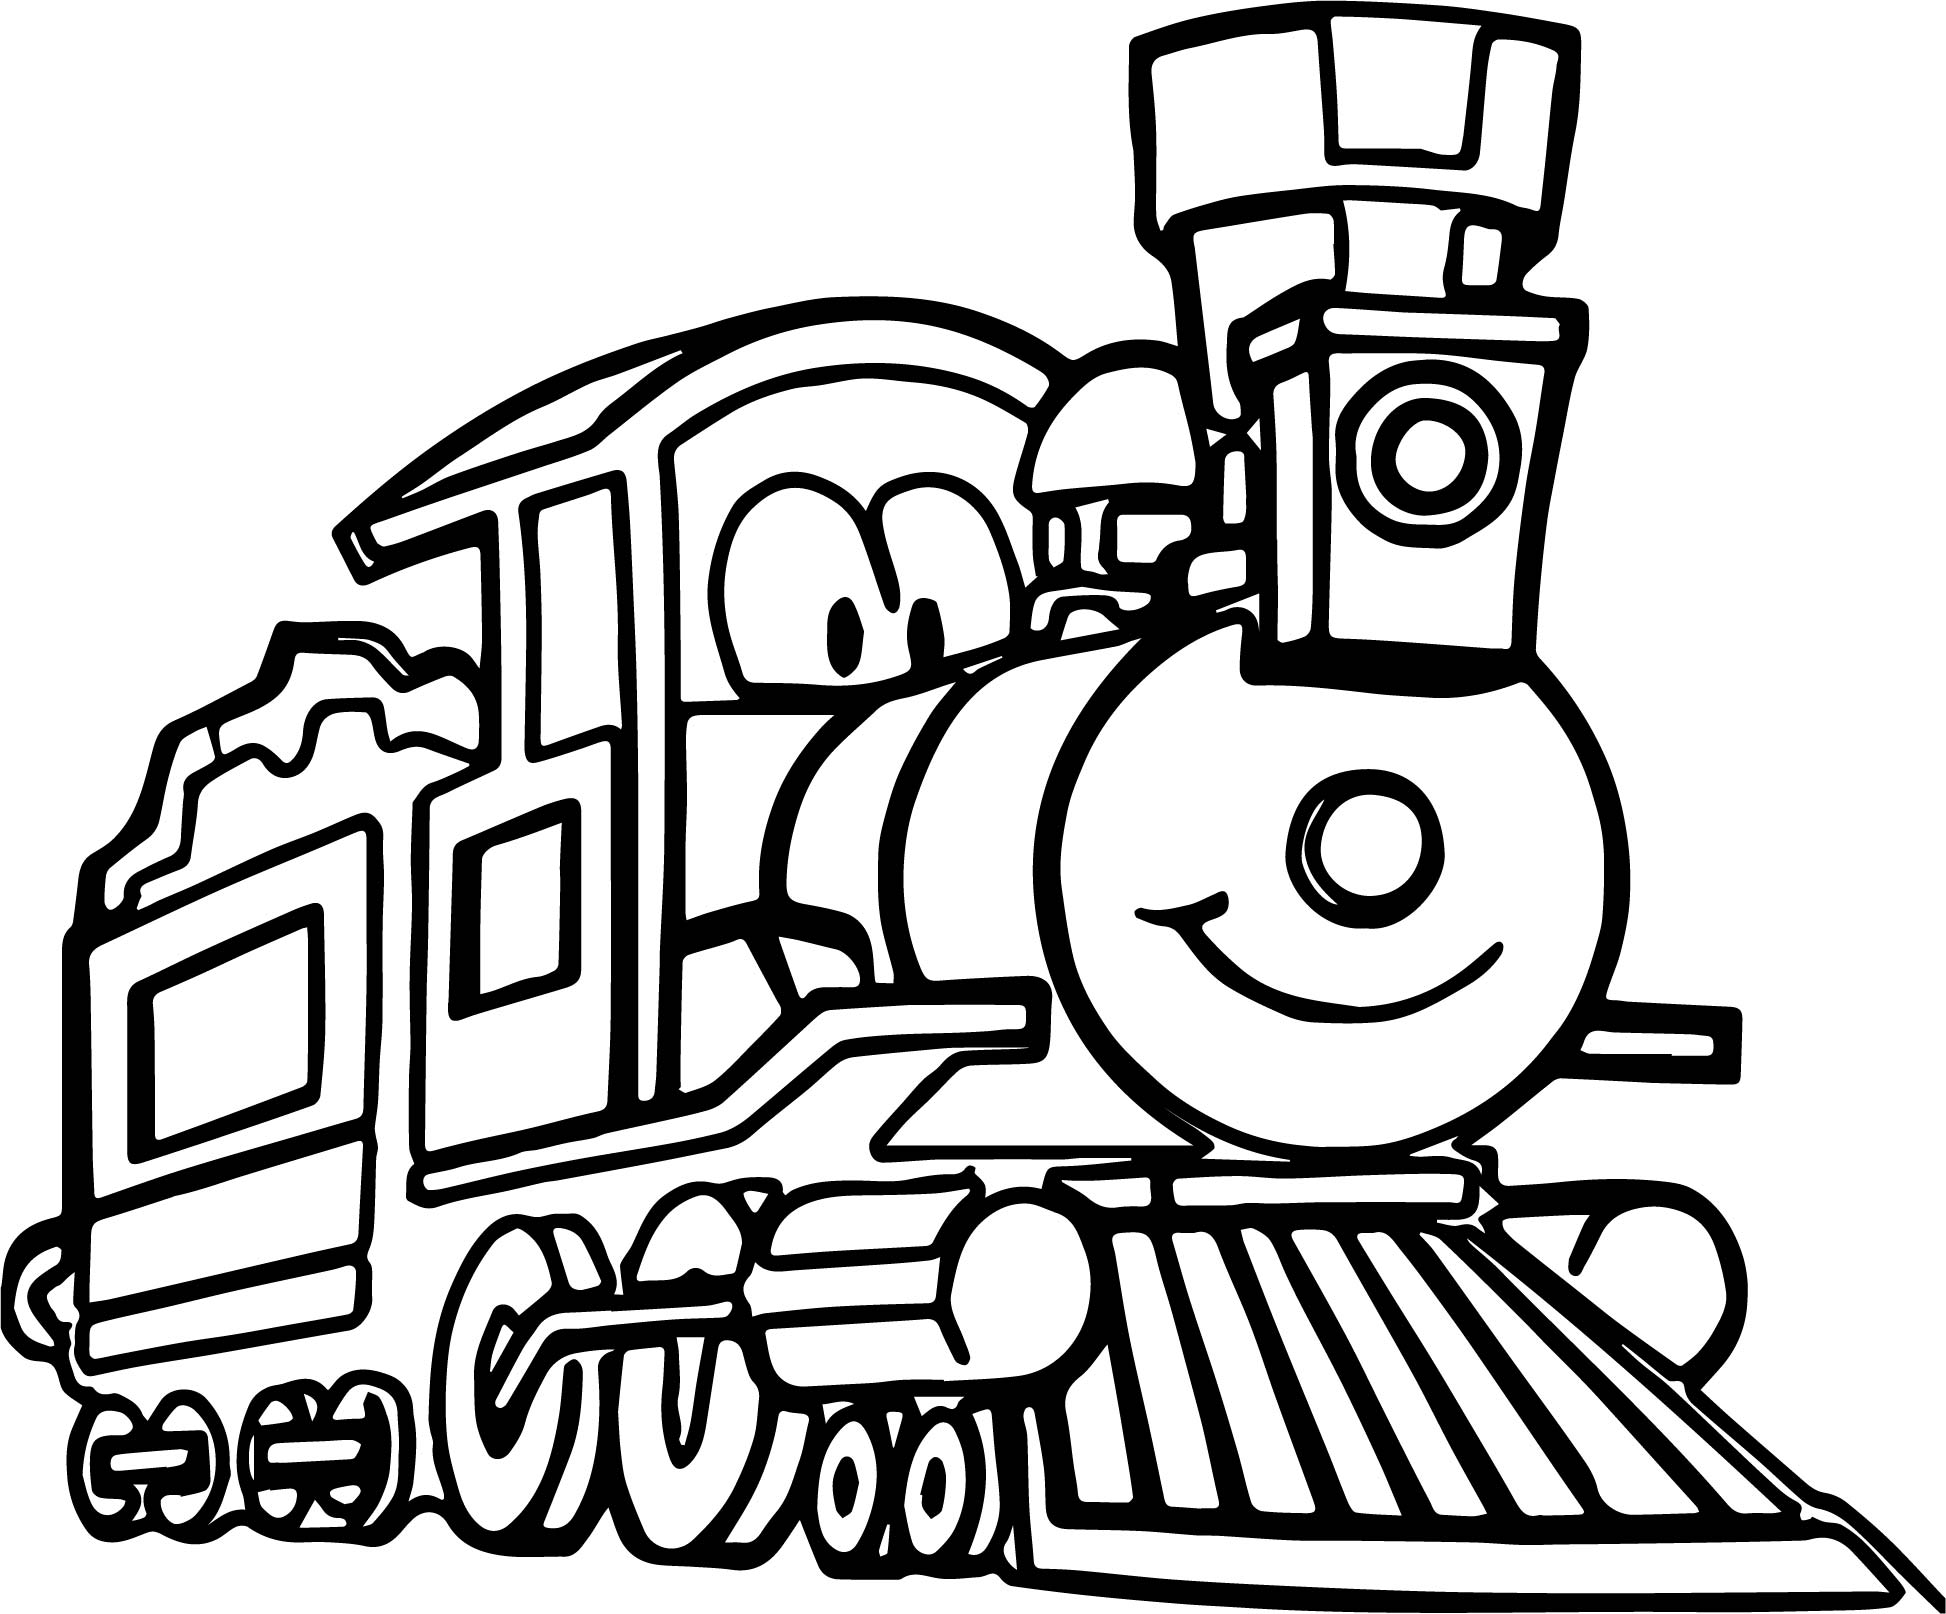 printable steam train coloring pages train and railroad coloring pages steam locomotive steam pages train coloring printable